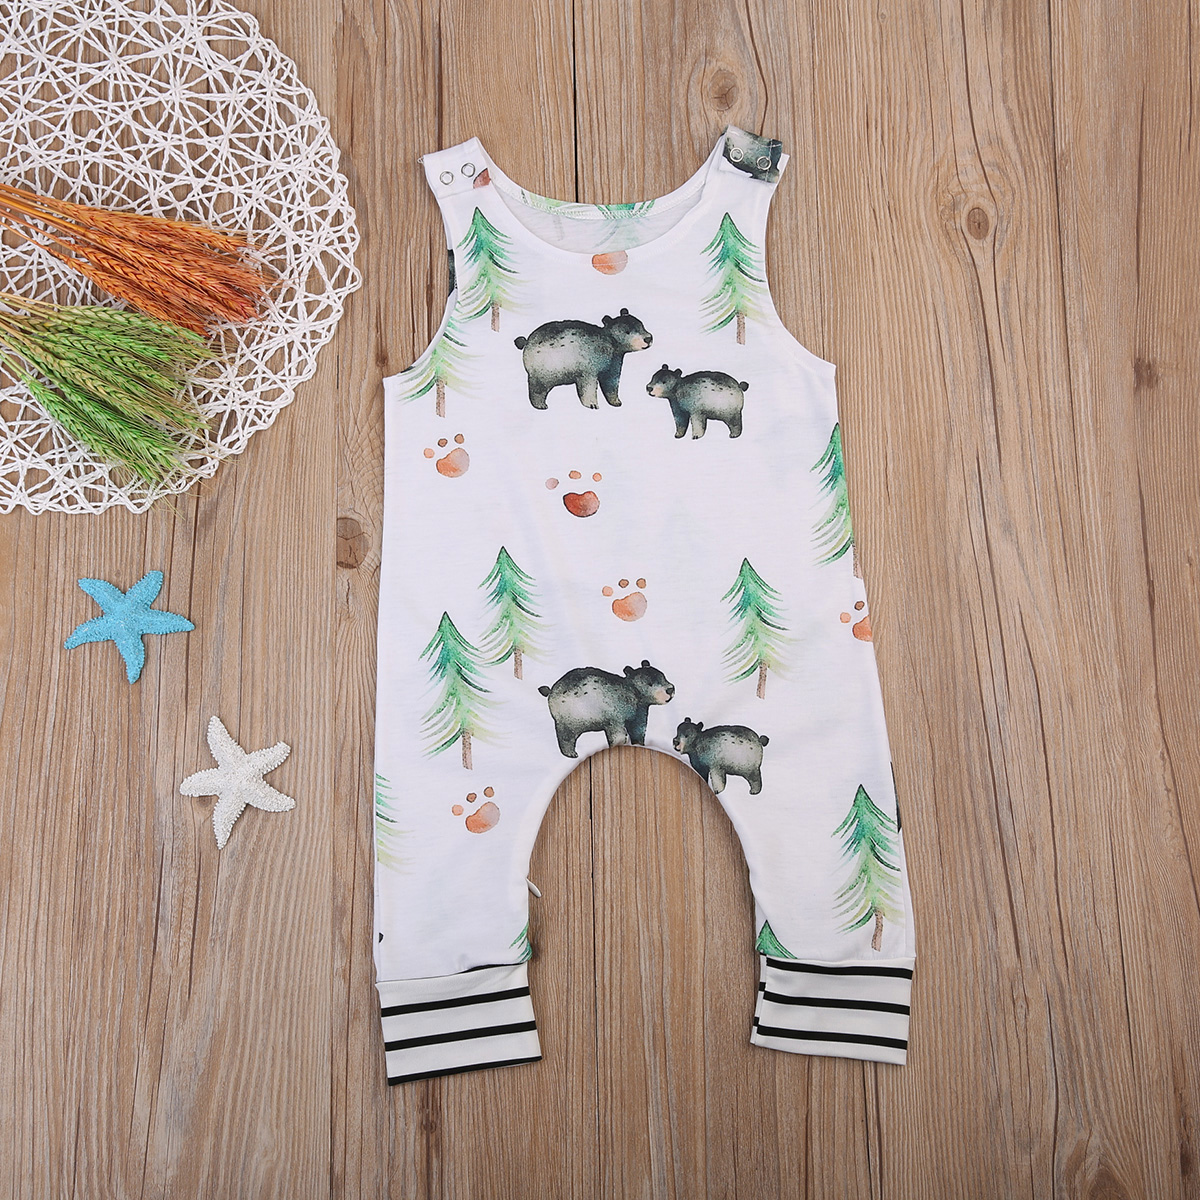 Funny Kids Infant Baby Boy Girl Sleeveless   Romper   Cute Bear Jumpsuit Outfits One-Piece Set 0-24M